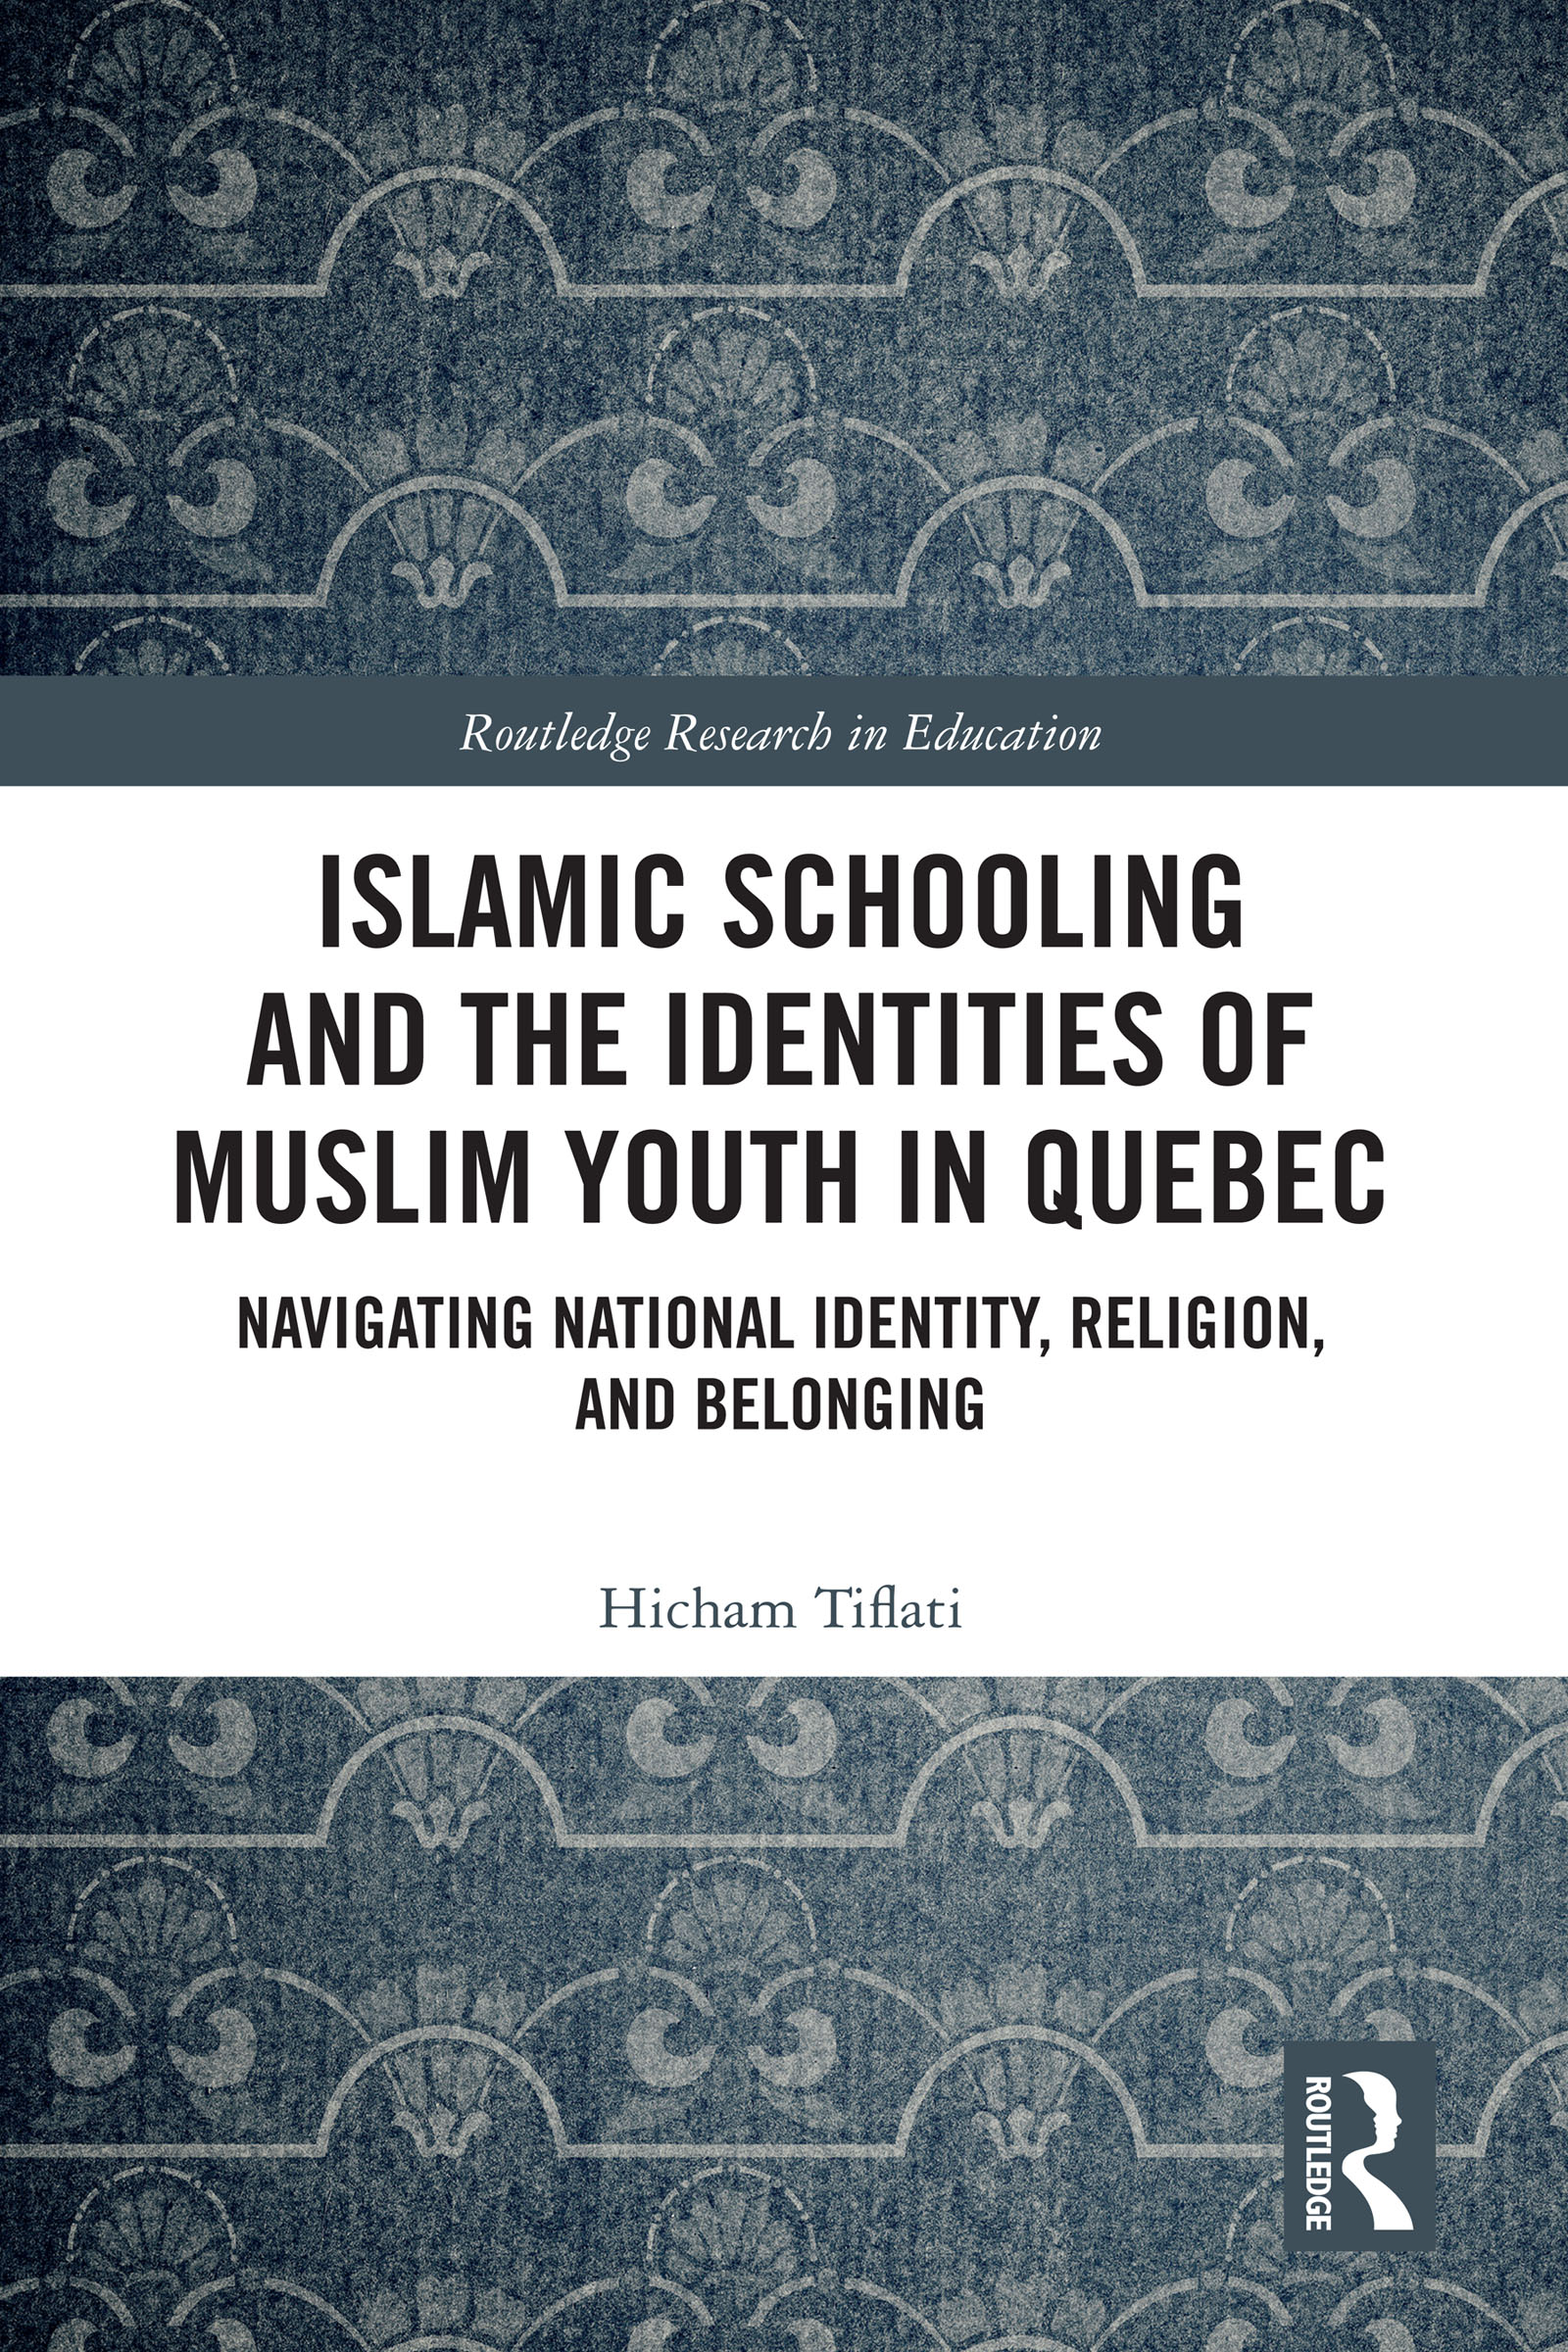 Stakeholders' Perspectives on Islamic Schooling